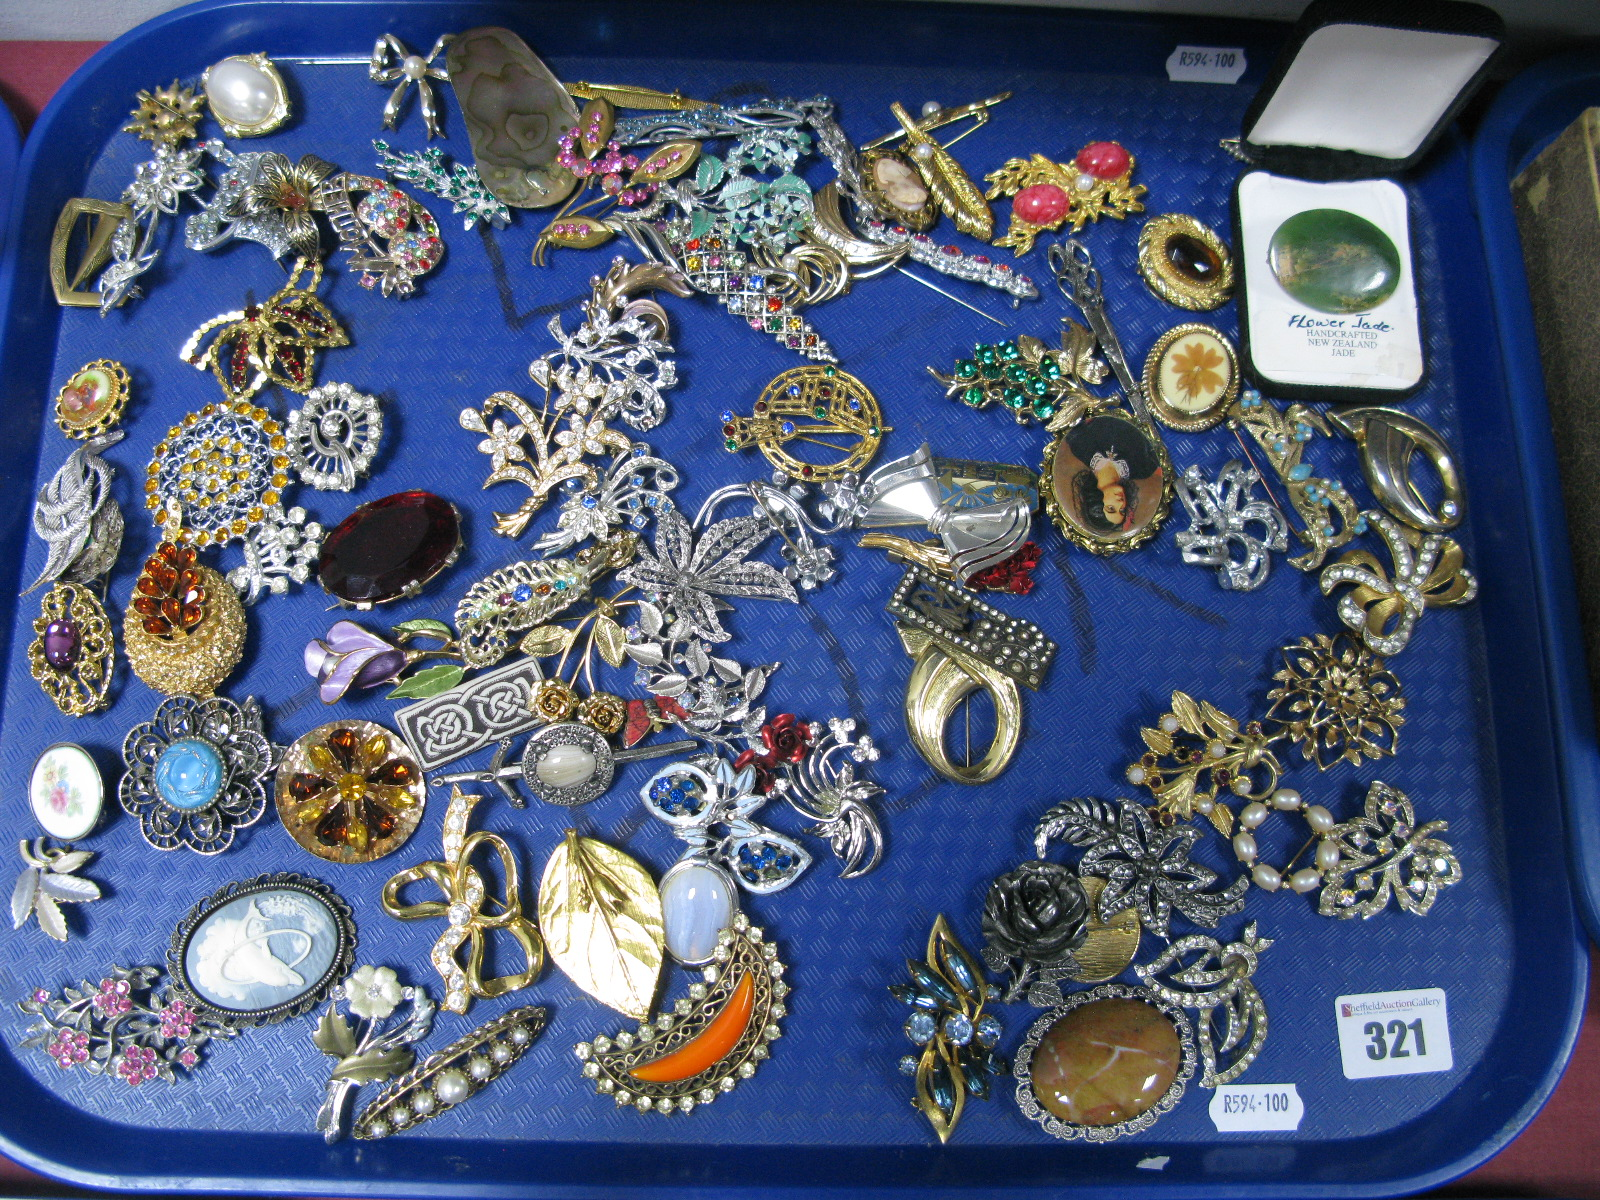 Lot 321 - A Mixed Lot of Assorted Costume Brooches, including cameo style, floral sprays, marcasite style,